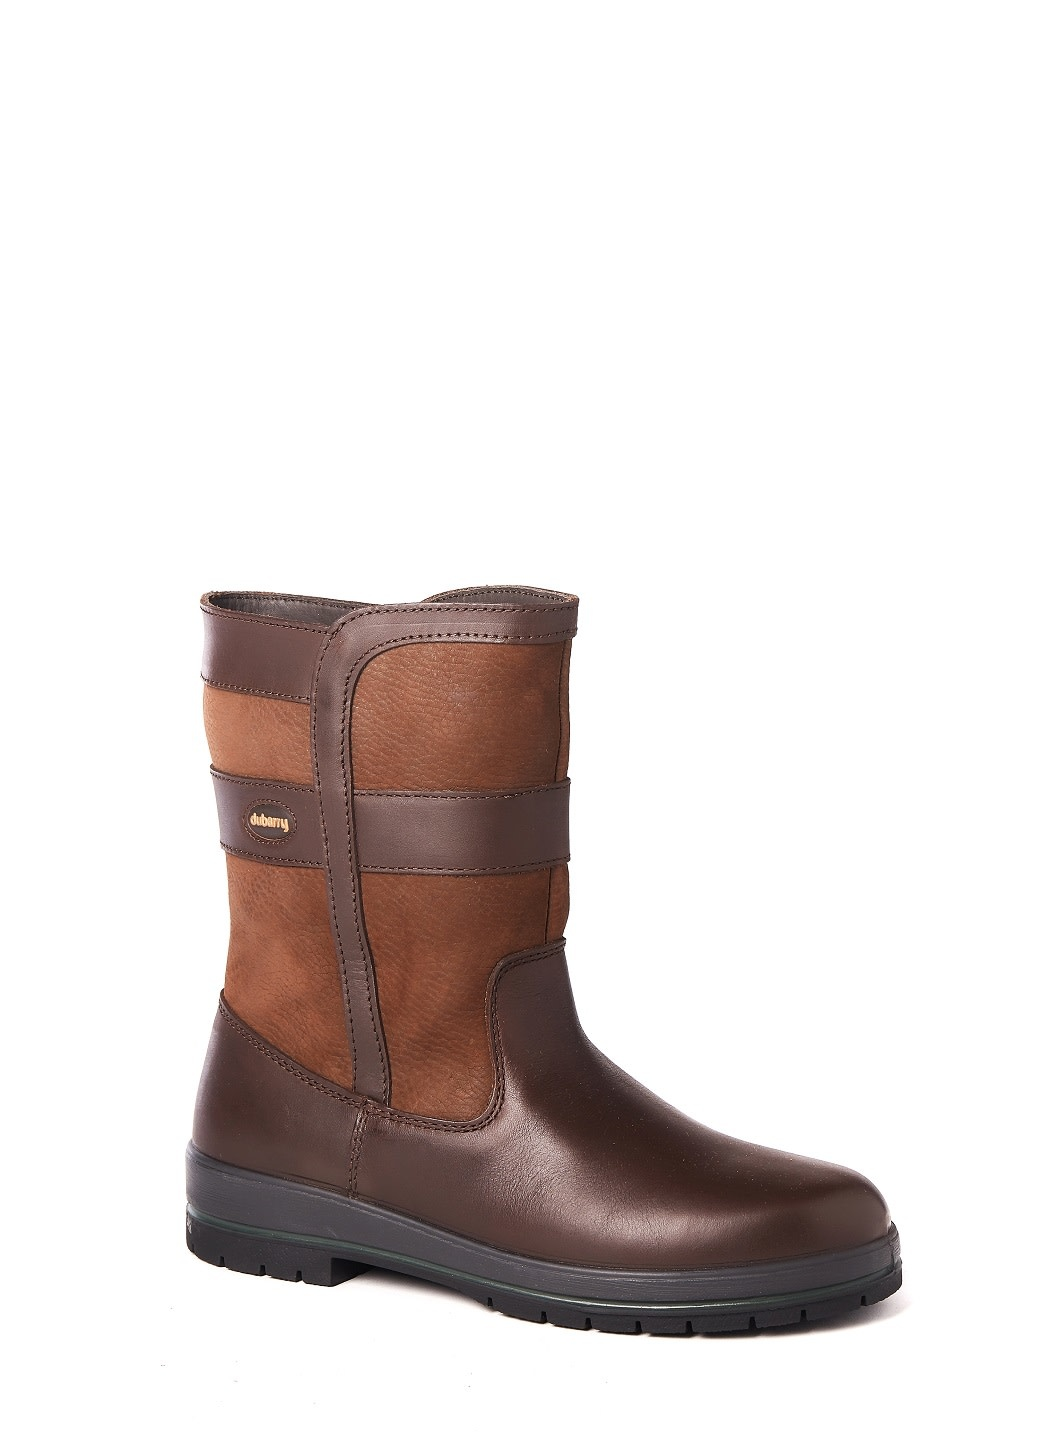 Dubarry Roscommon - Walnut-1